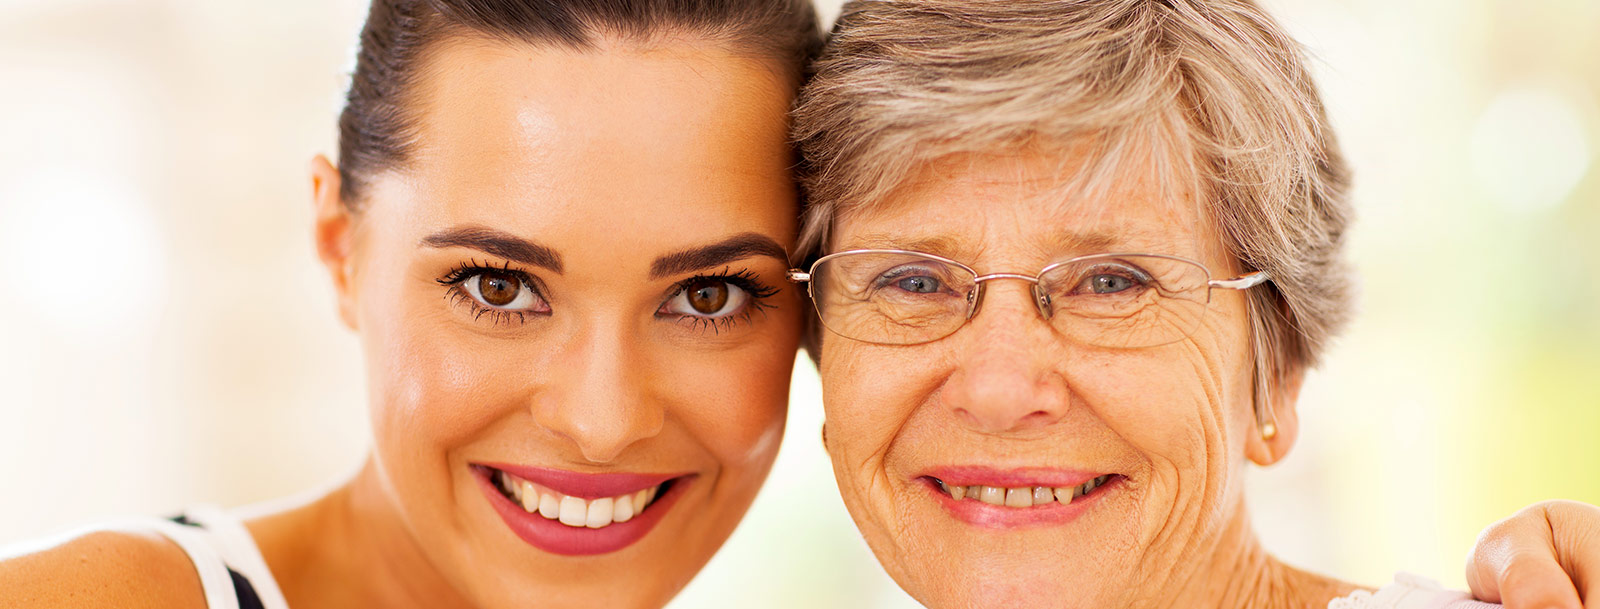 You can plan your gifting at the senior living facility in Fulton